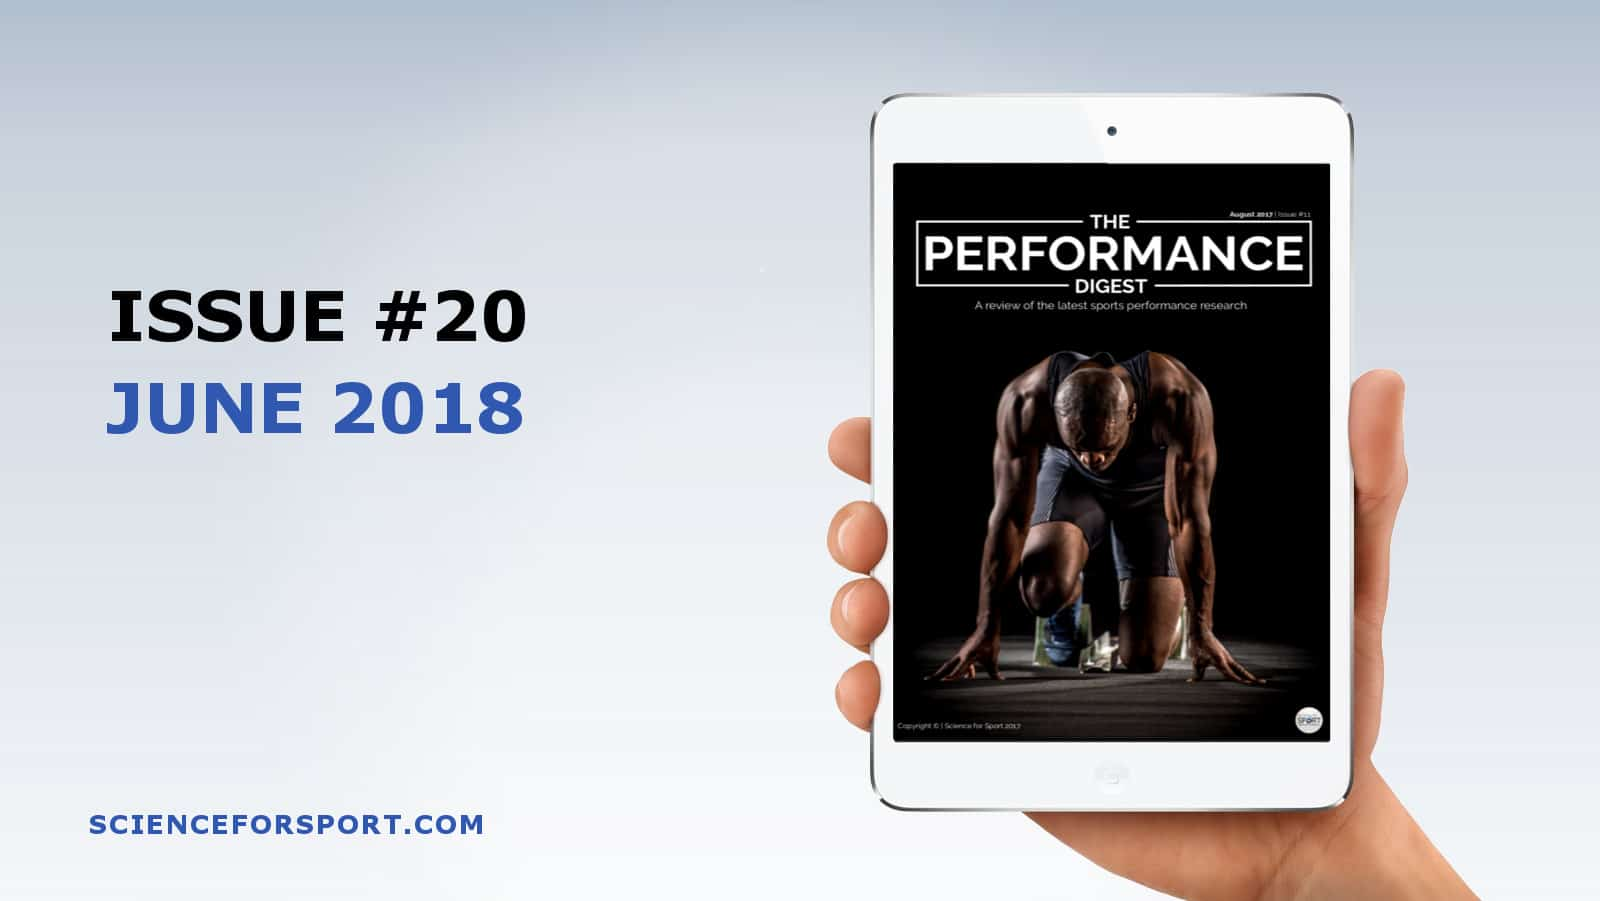 Performance Digest - June 2018 - Science for Sport